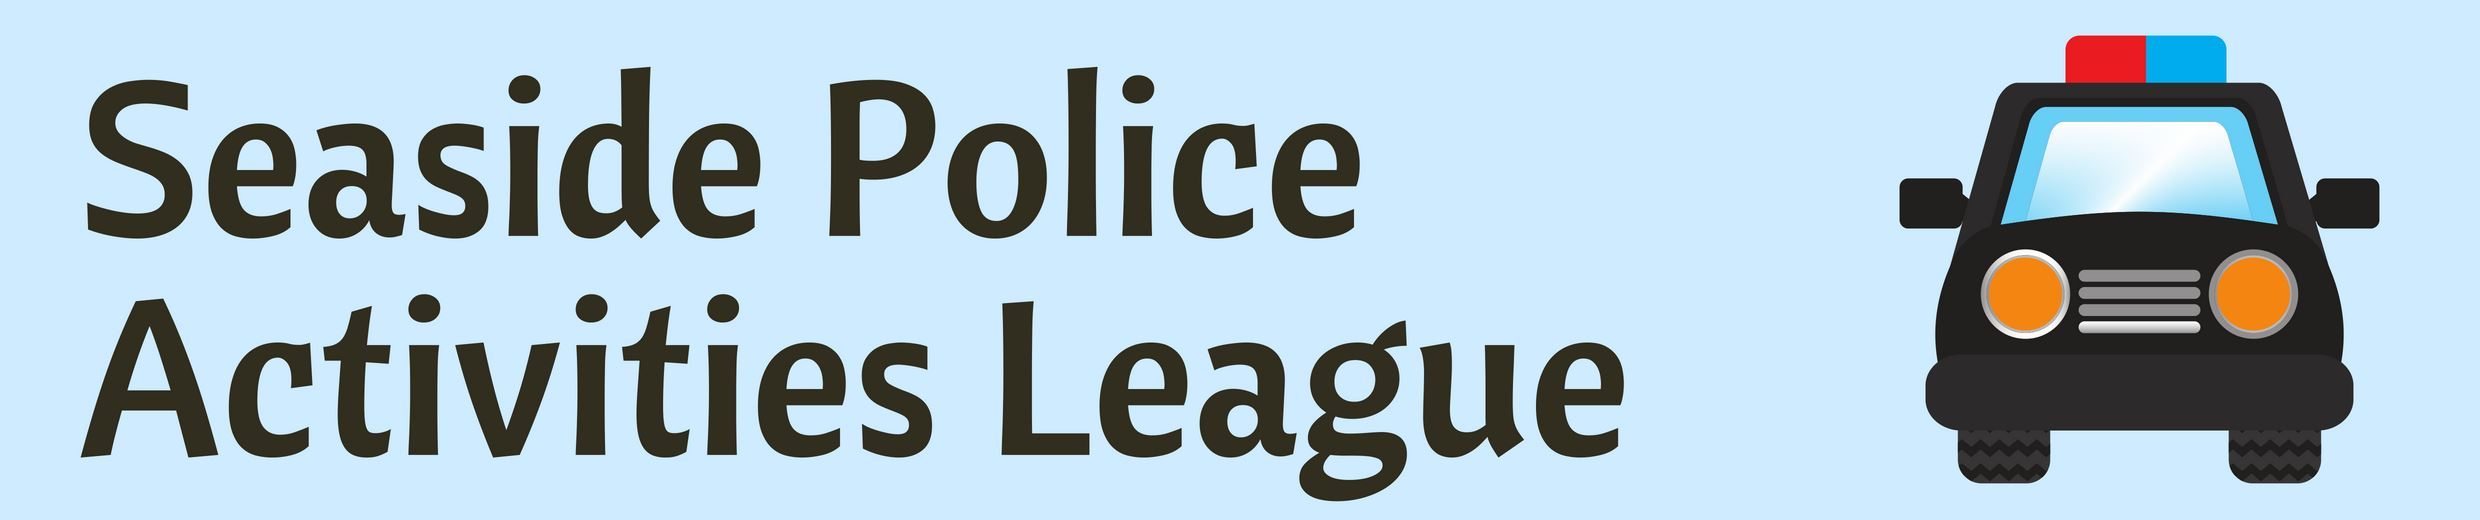 Police Activities League Banner